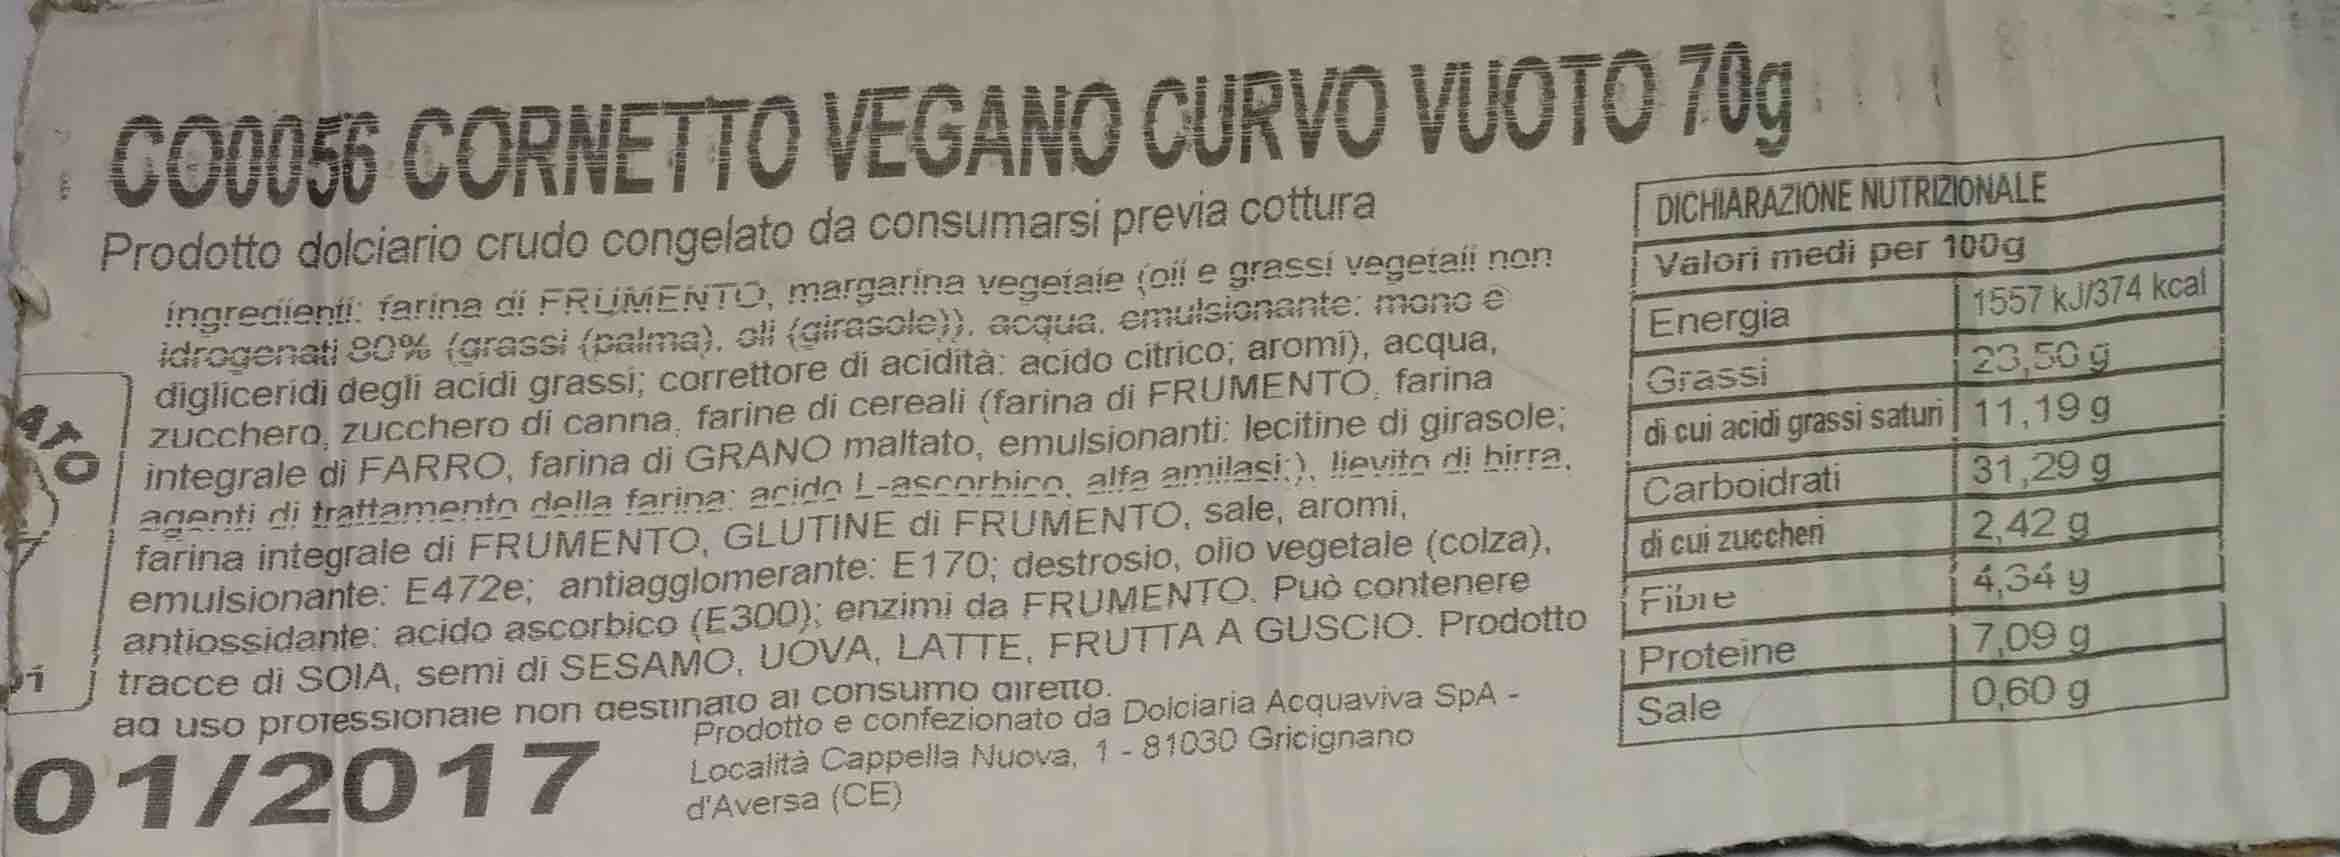 ingredienti cornetto San Vito